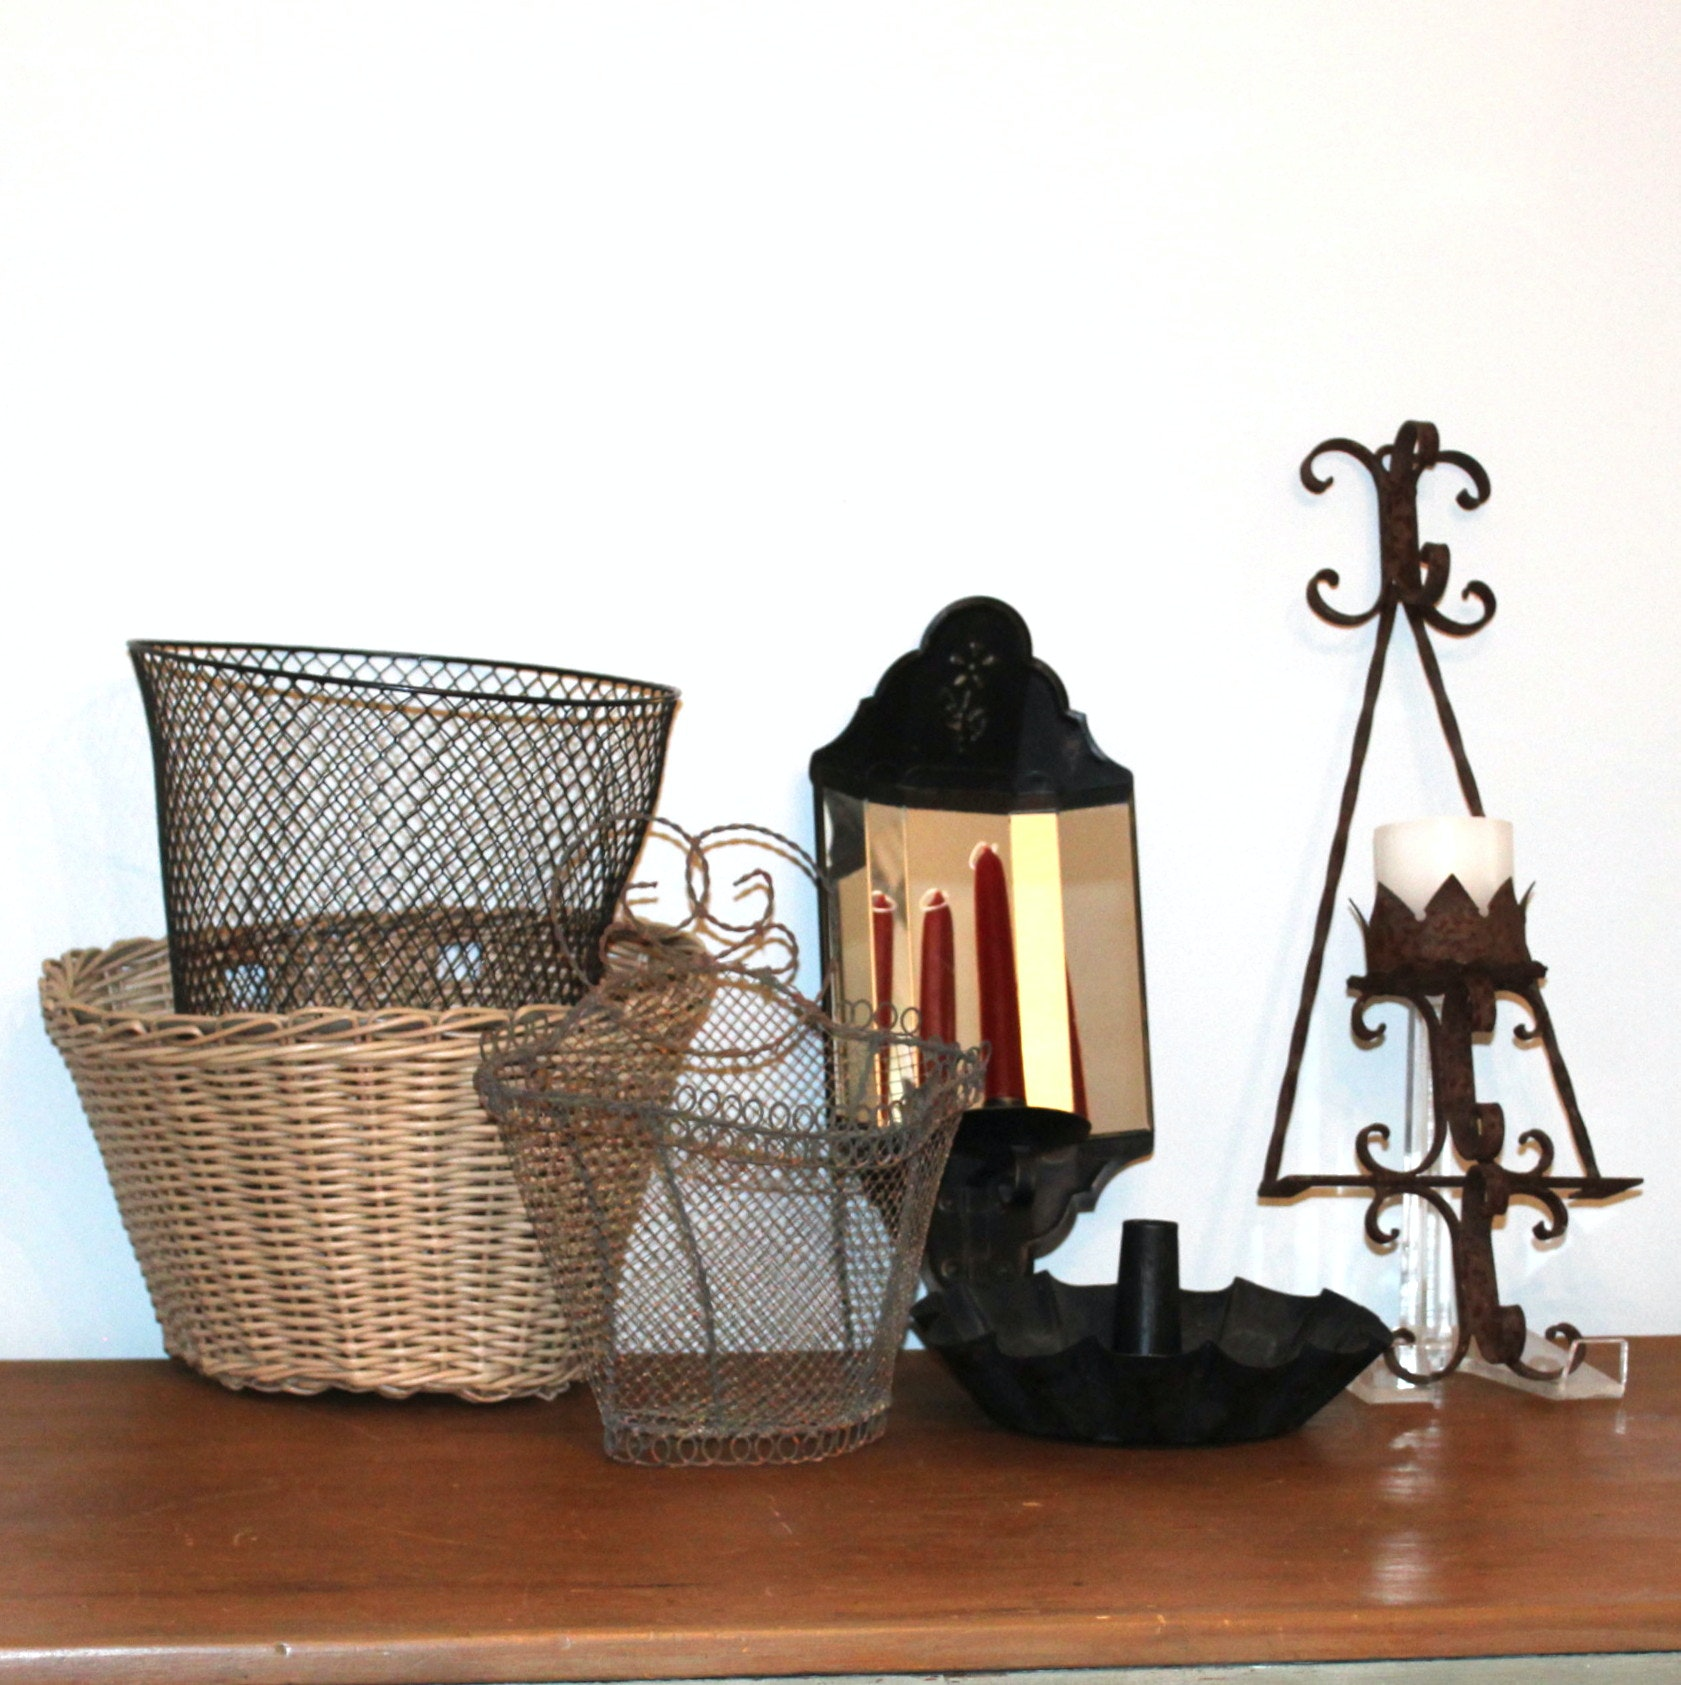 Vintage Baskets and Candleholders